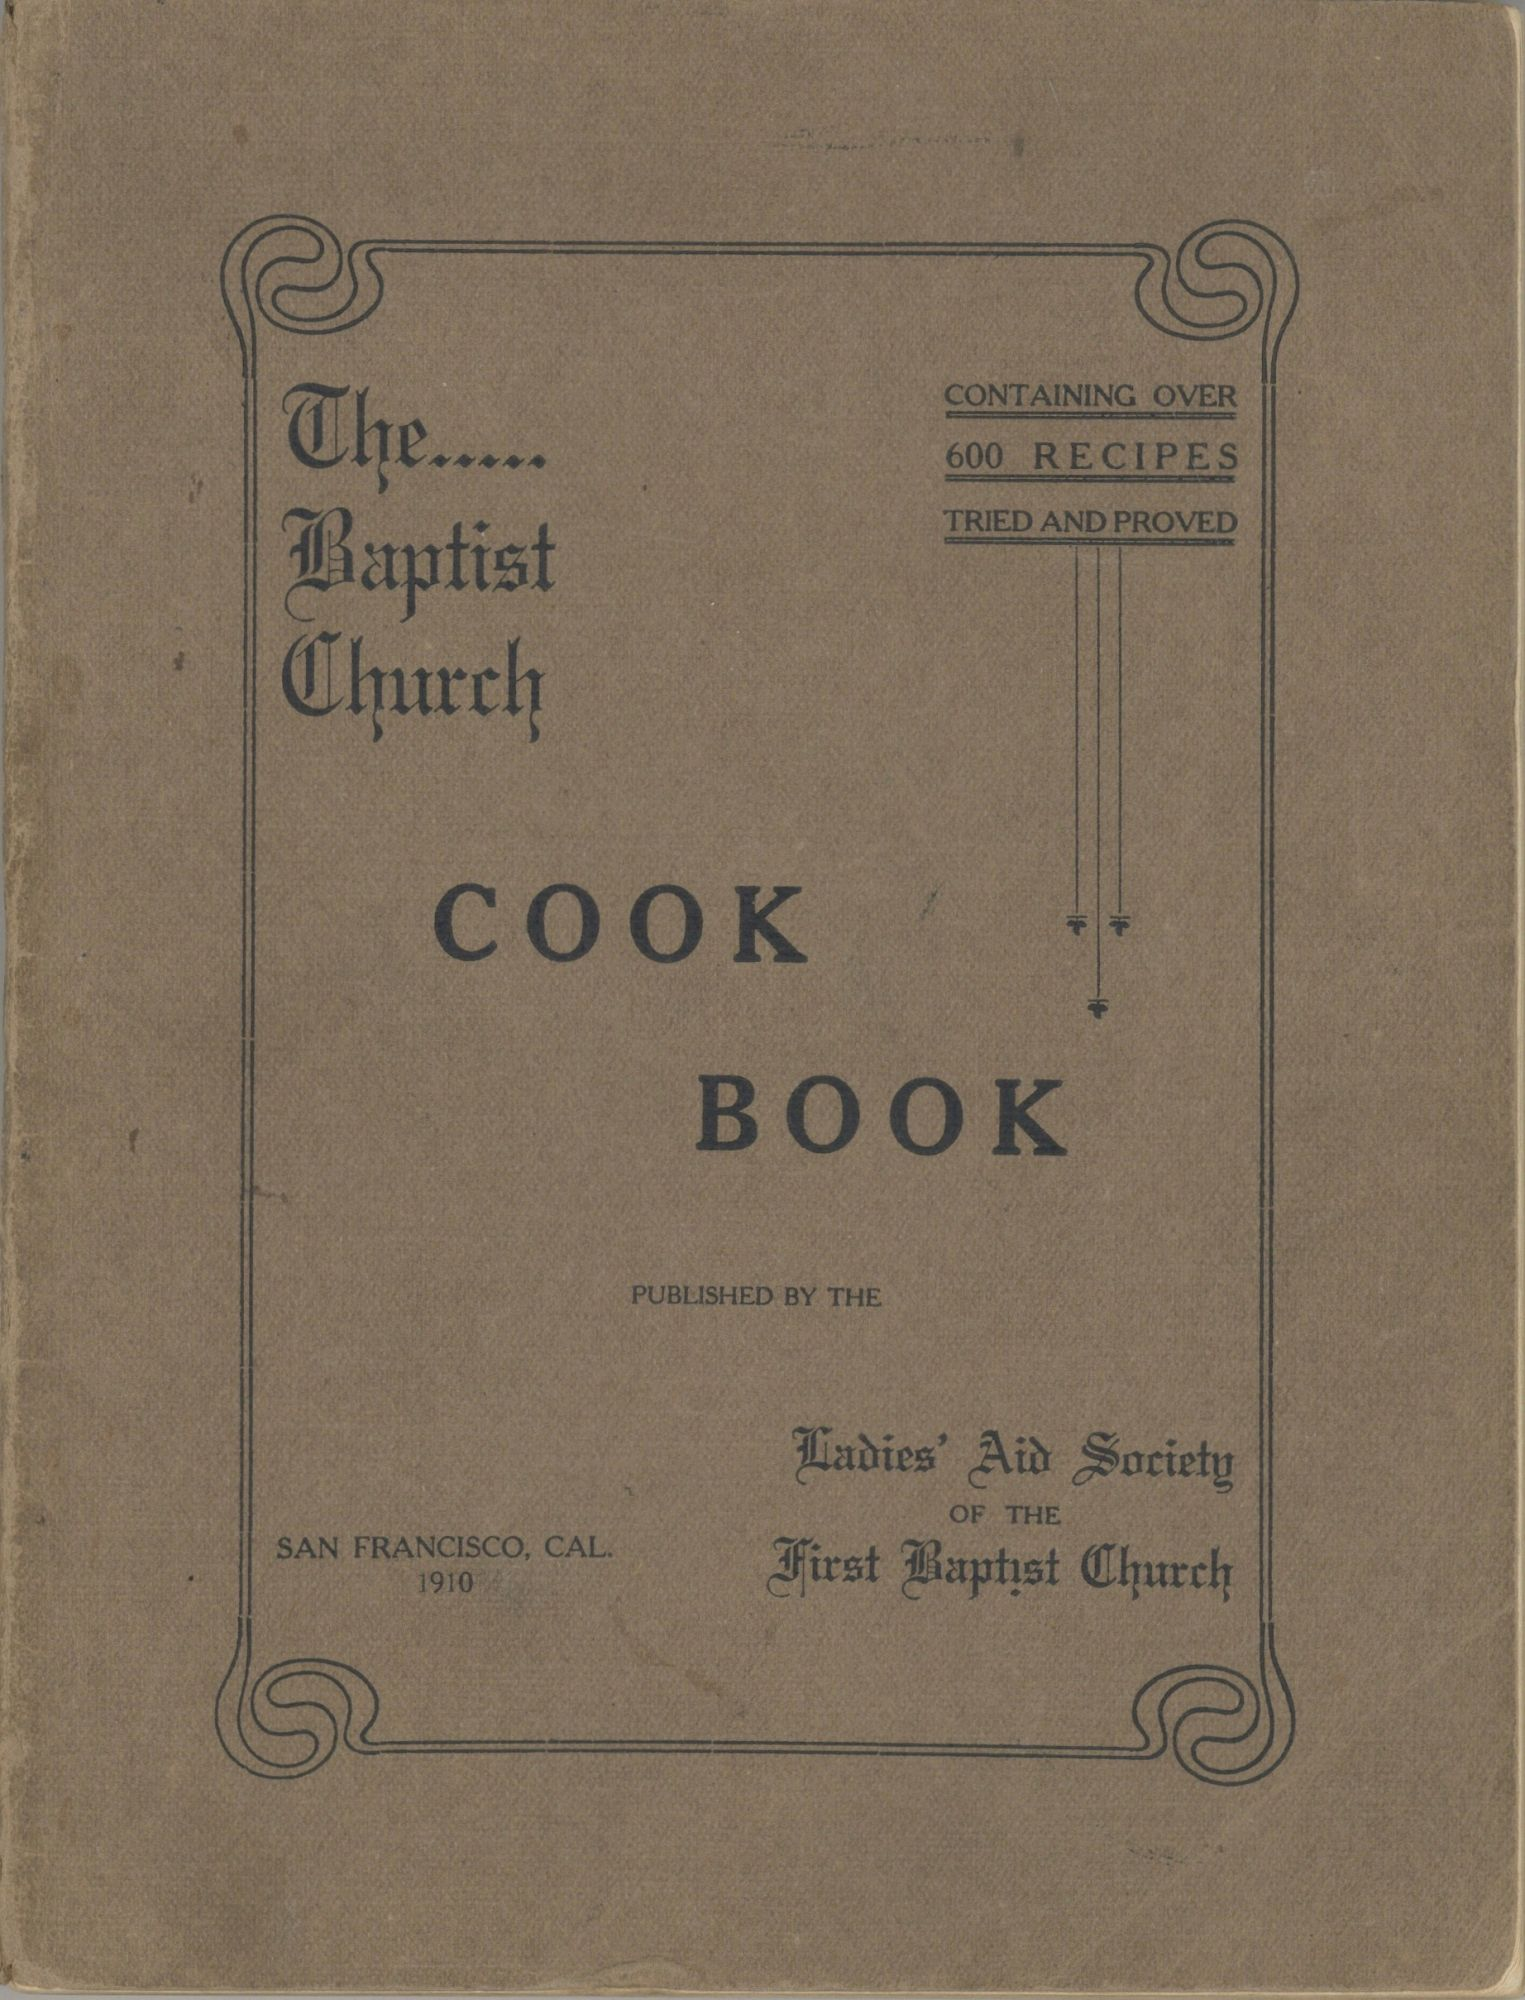 The Baptist Church Cook Book. Published by the Ladies' Aid Society of the First Baptist Church, San Francisco, Cal. First Baptist Church, Ladies' Aid Society, San Francisco (Calif.